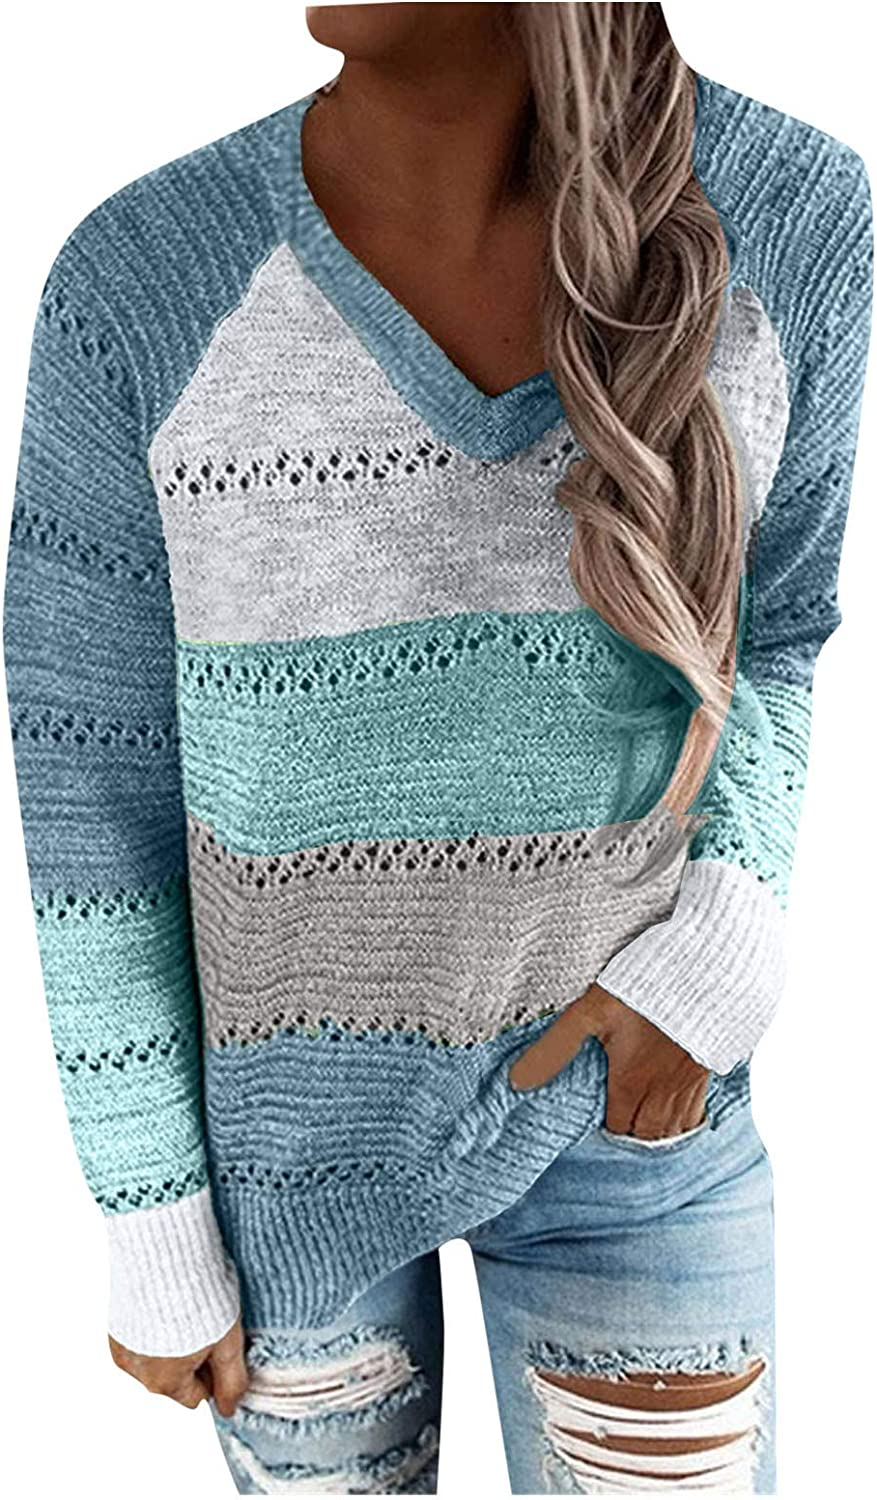 Sweaters for Women Crochet Color Block Fashion Casual Tops V/O Neck Zipper/Drawstring with Hat Tunic